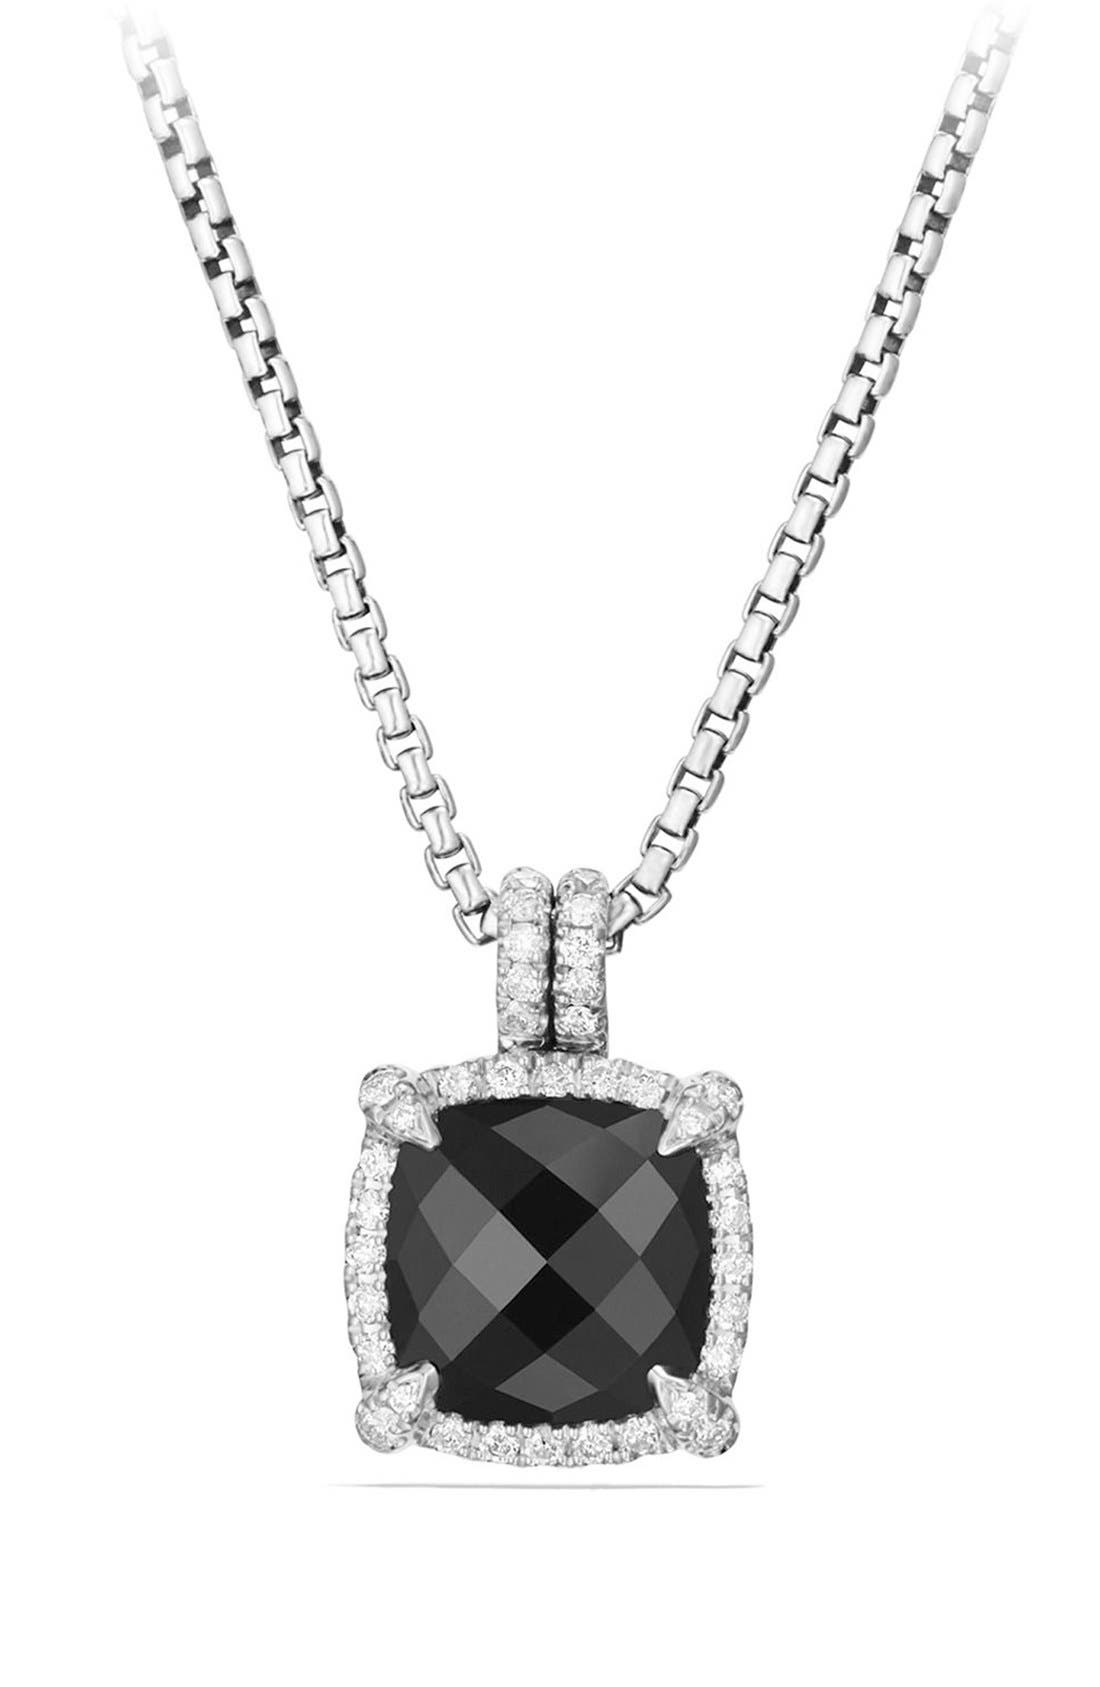 David Yurman 'Châtelaine' Small Pavé Bezel Pendant Necklace with Diamonds